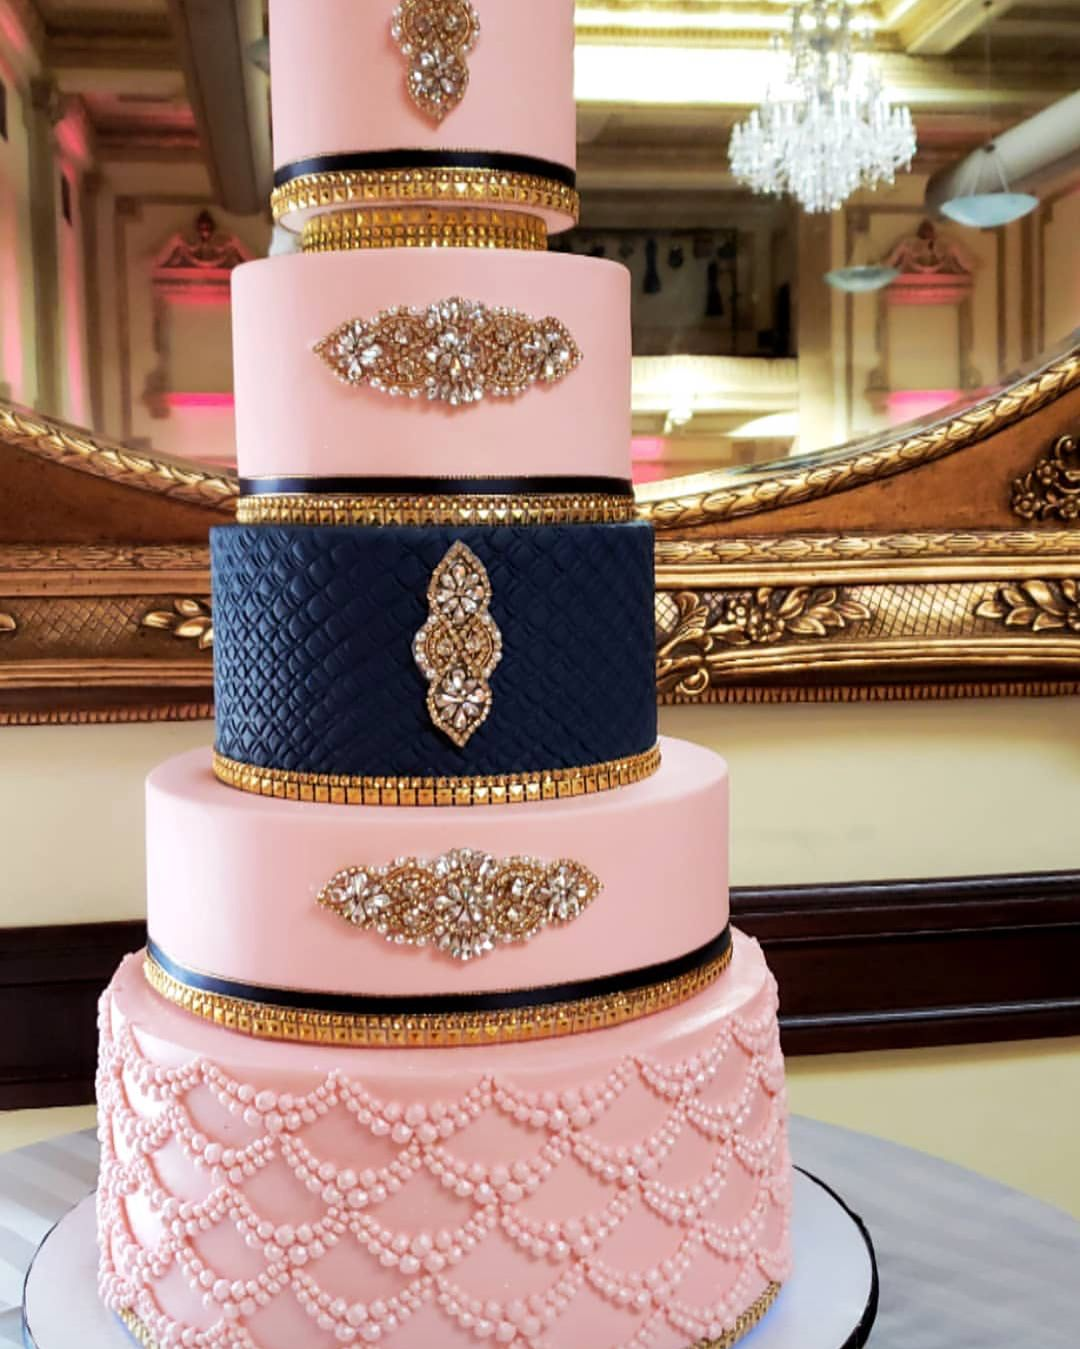 I Do Ghana On Instagram Sneak Peek Gorgeous Navy Blue And Blush Pink Cake By Micklindcakes In 2020 Wedding Cake Navy Rose Gold Wedding Cakes Pink And Gold Wedding